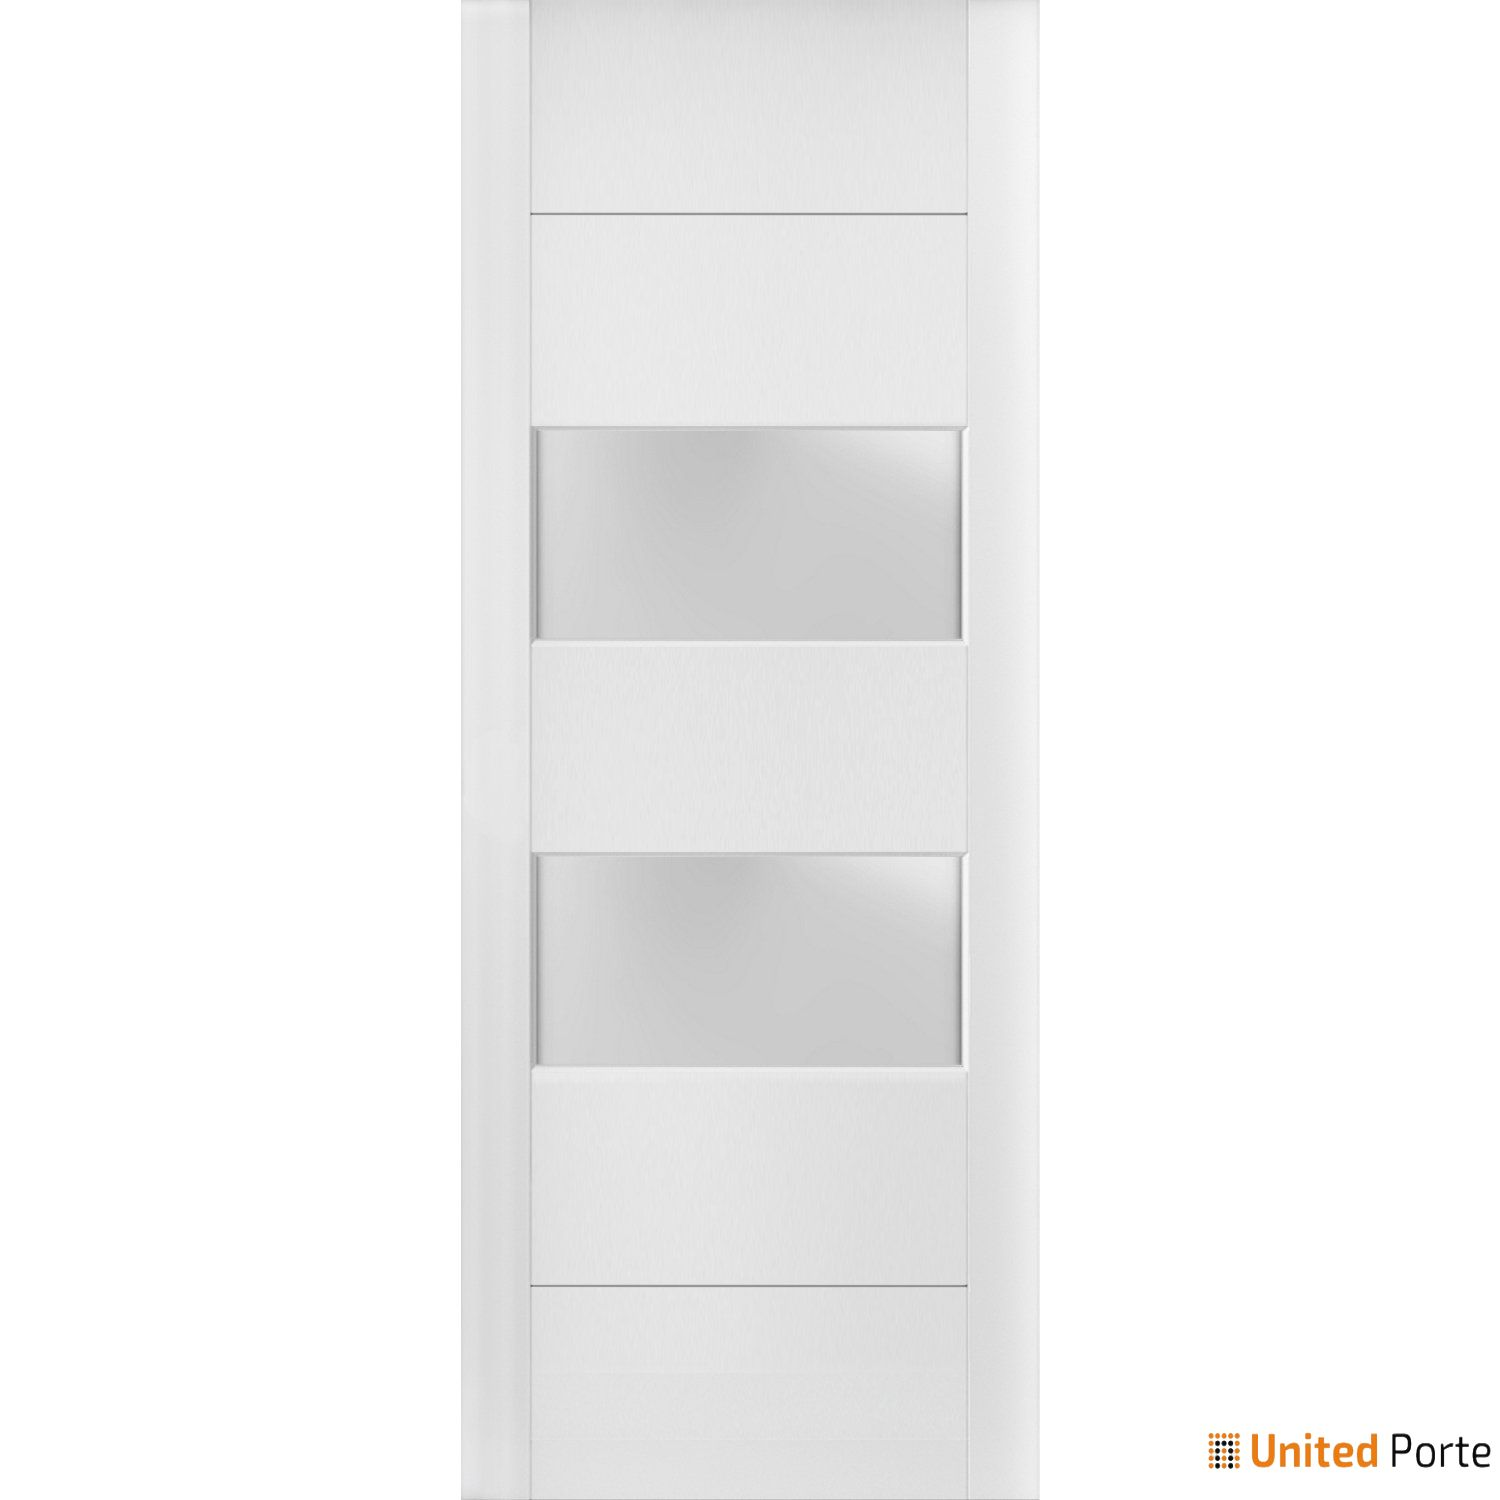 Lucia 4010 White Silk Sturdy Barn Door Frosted Glass 2 lites Slab | Solid Panel Interior Barn Doors